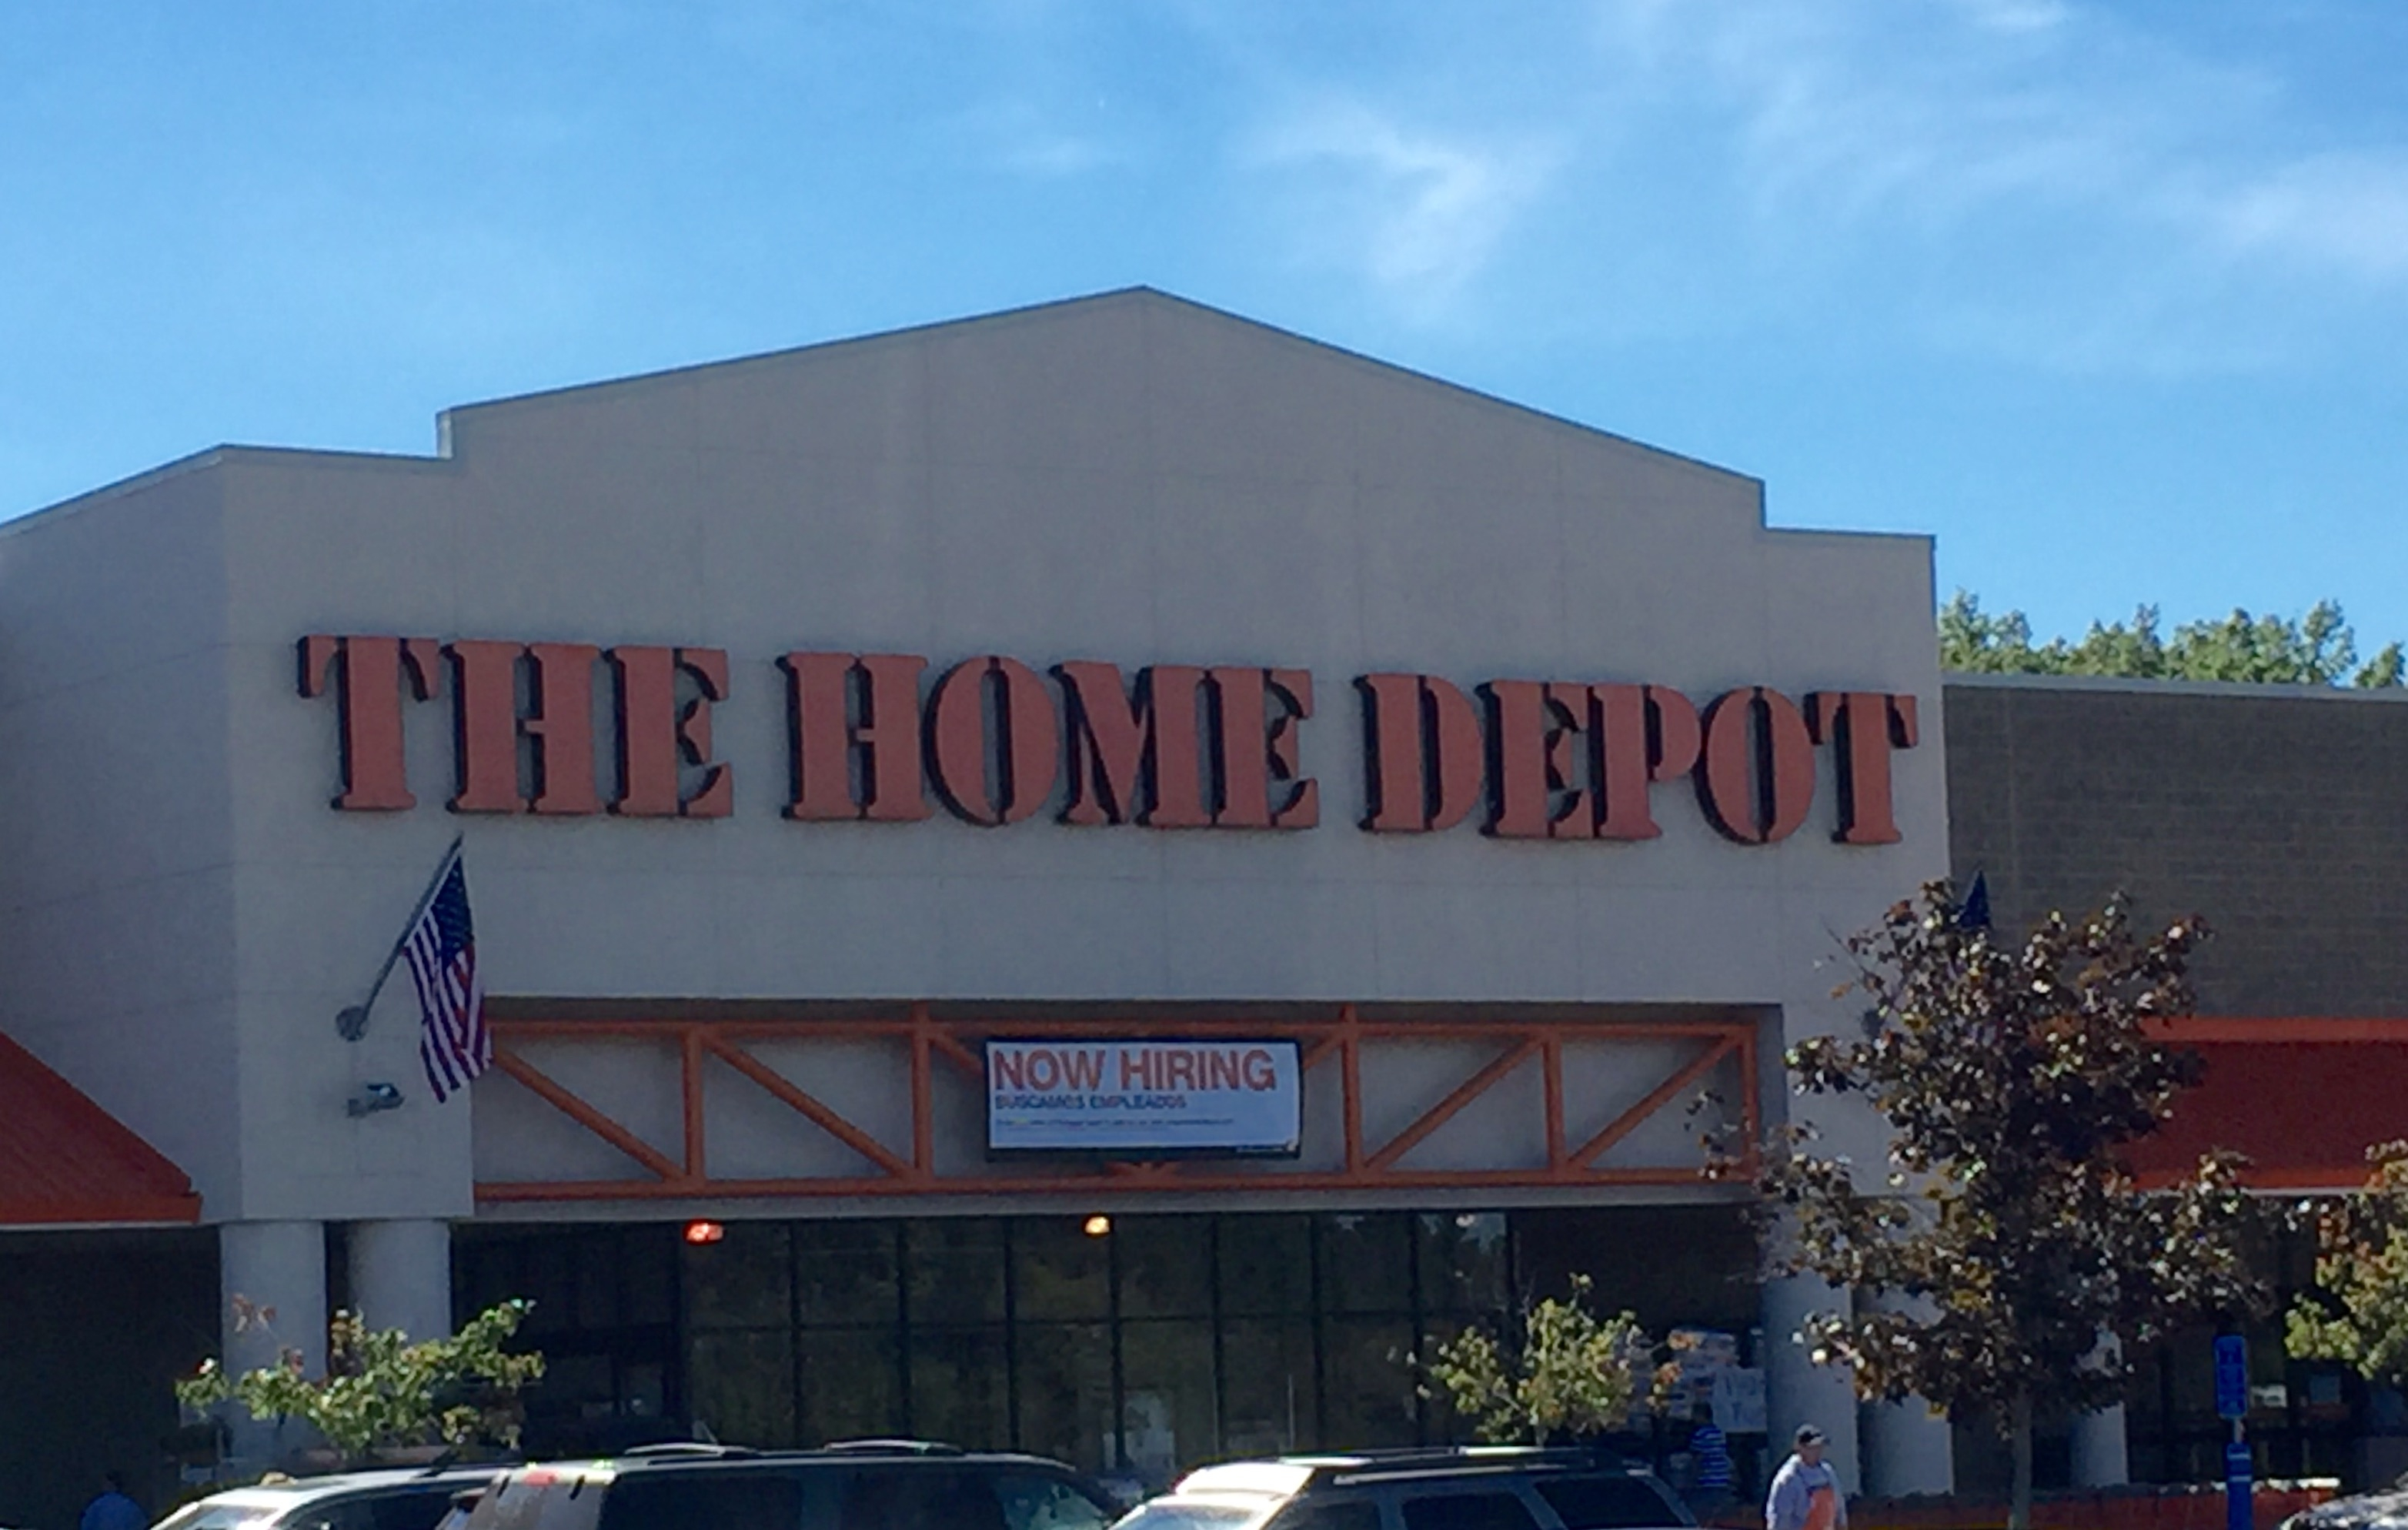 The Home Depot Main Street Tewksbury MA Home Depot MapQuest